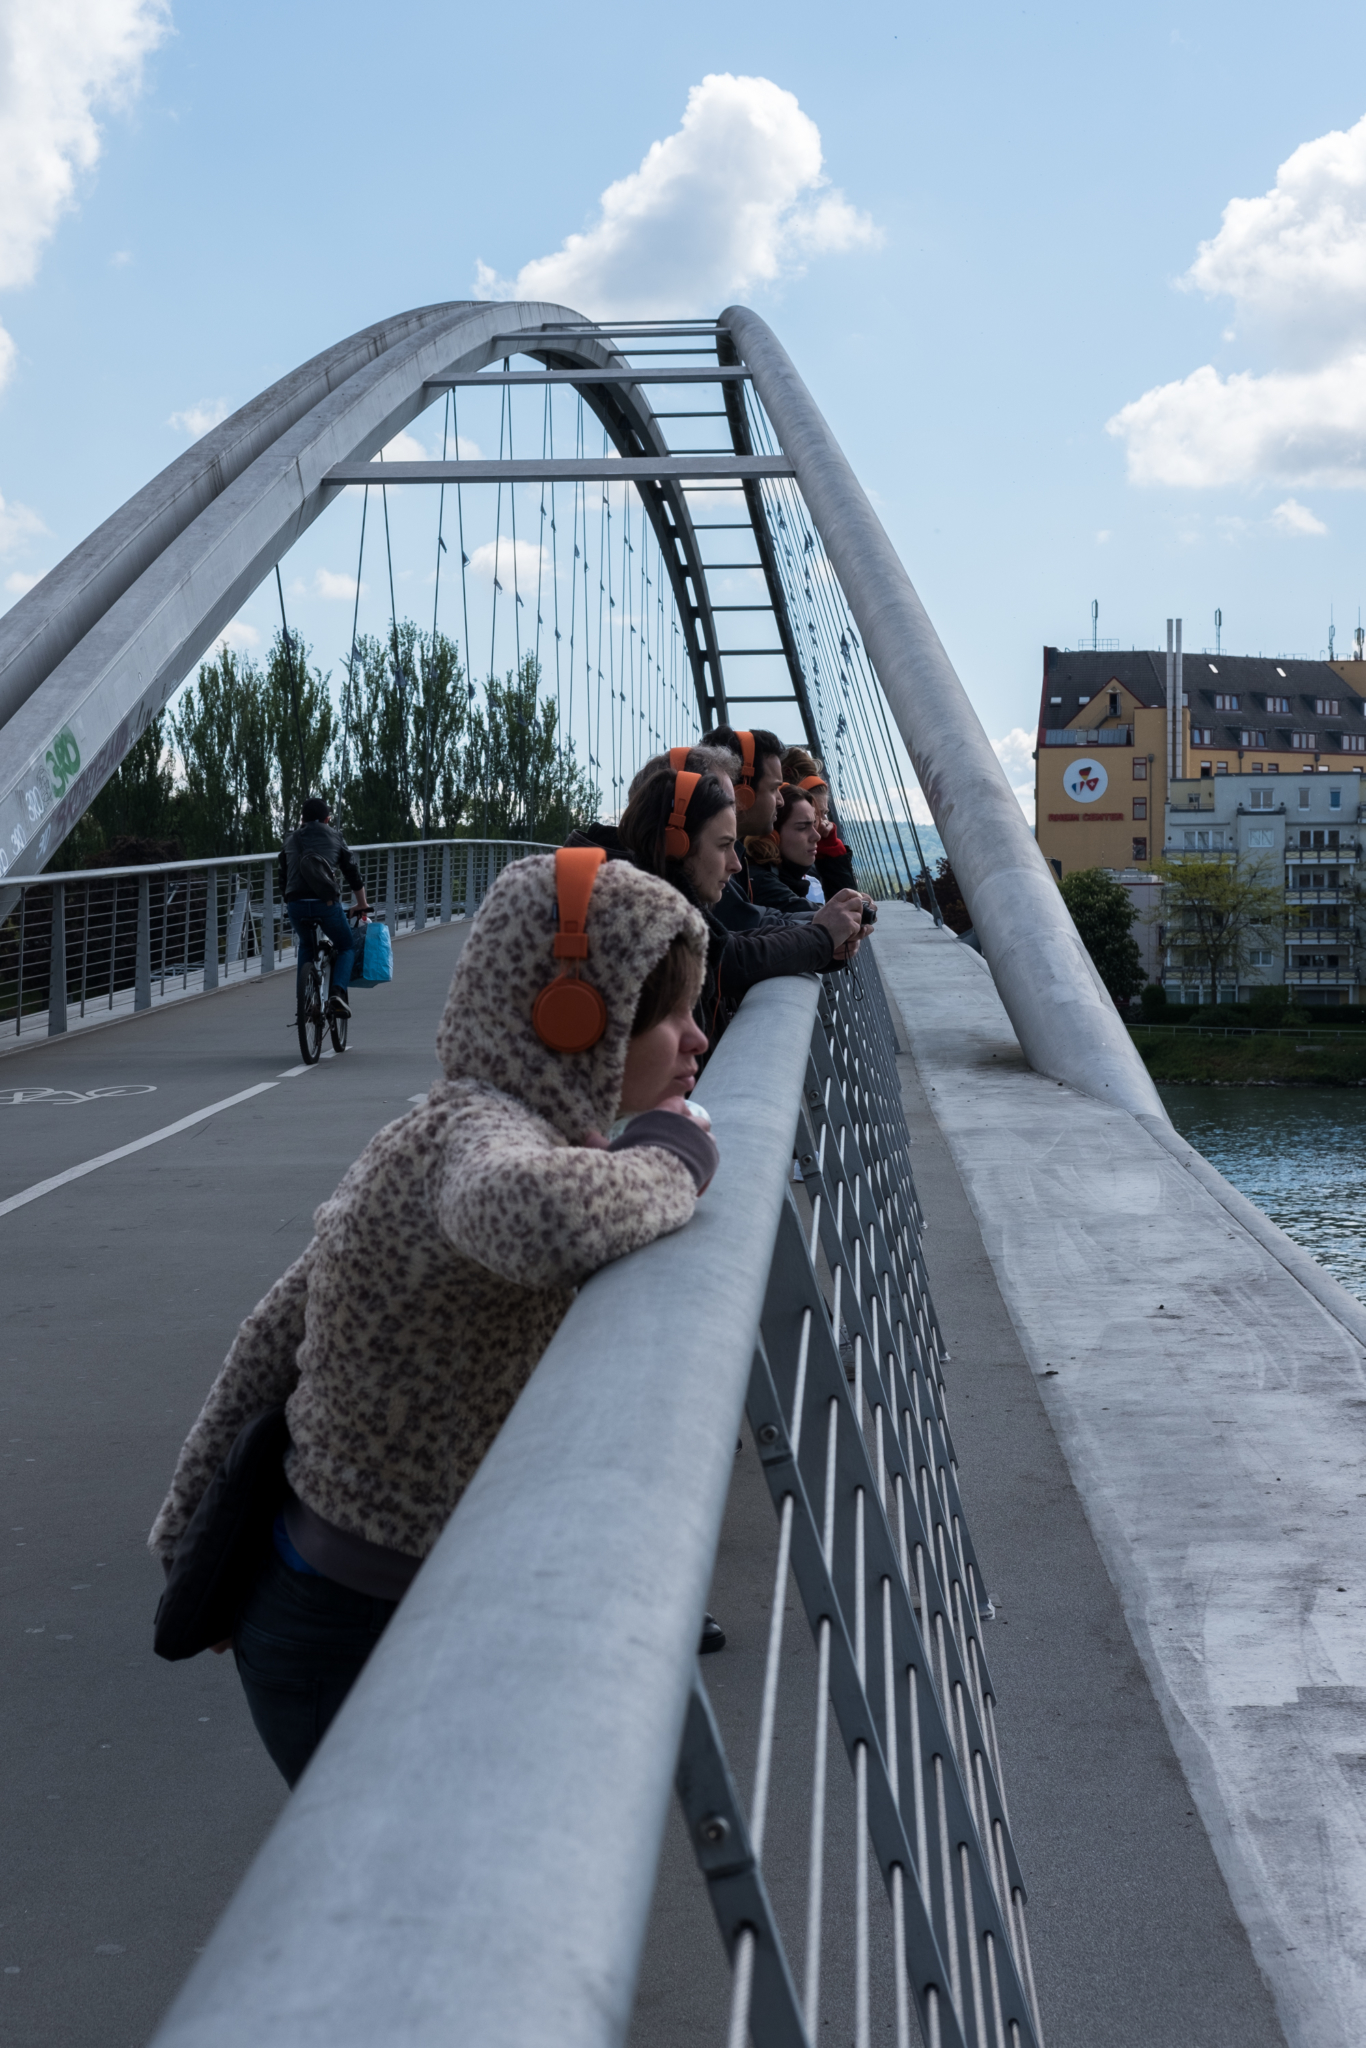 Participants of the audio walk wastescapes on the Dreiländer bridge connecting France with Germany, trinational border area of Basel 2017.